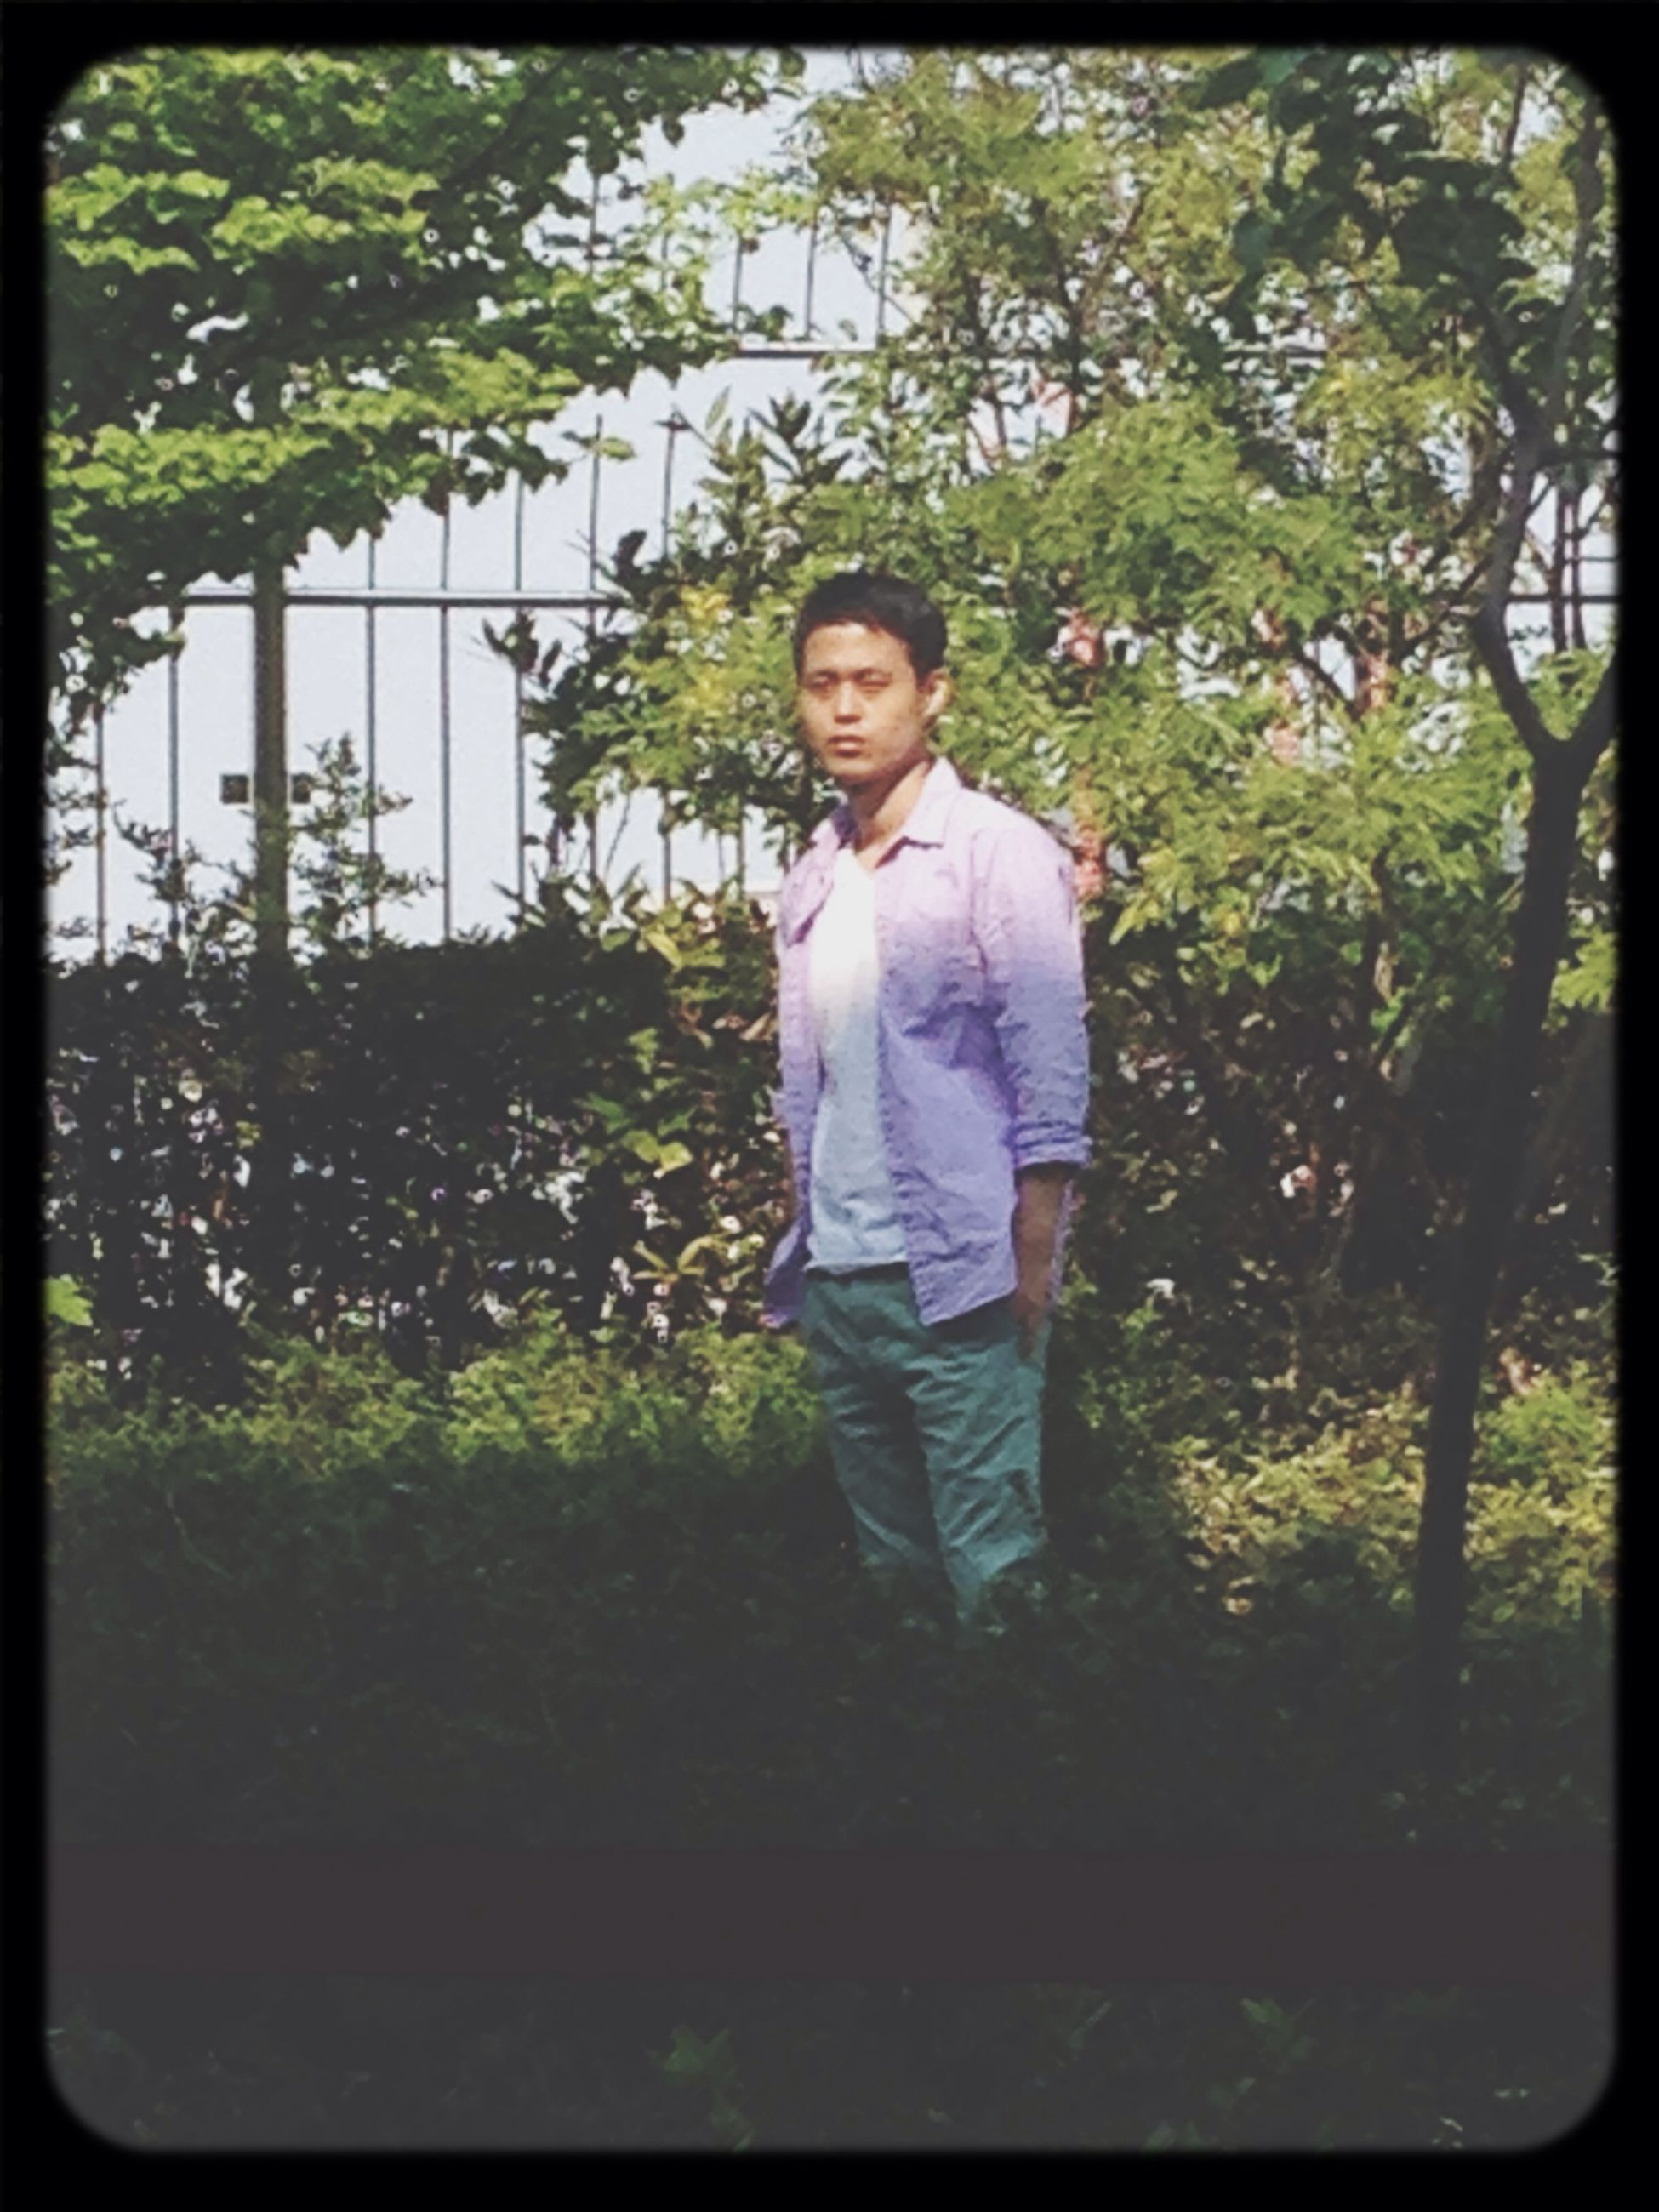 person, looking at camera, portrait, casual clothing, transfer print, tree, lifestyles, standing, front view, full length, leisure activity, smiling, young adult, auto post production filter, elementary age, childhood, plant, park - man made space